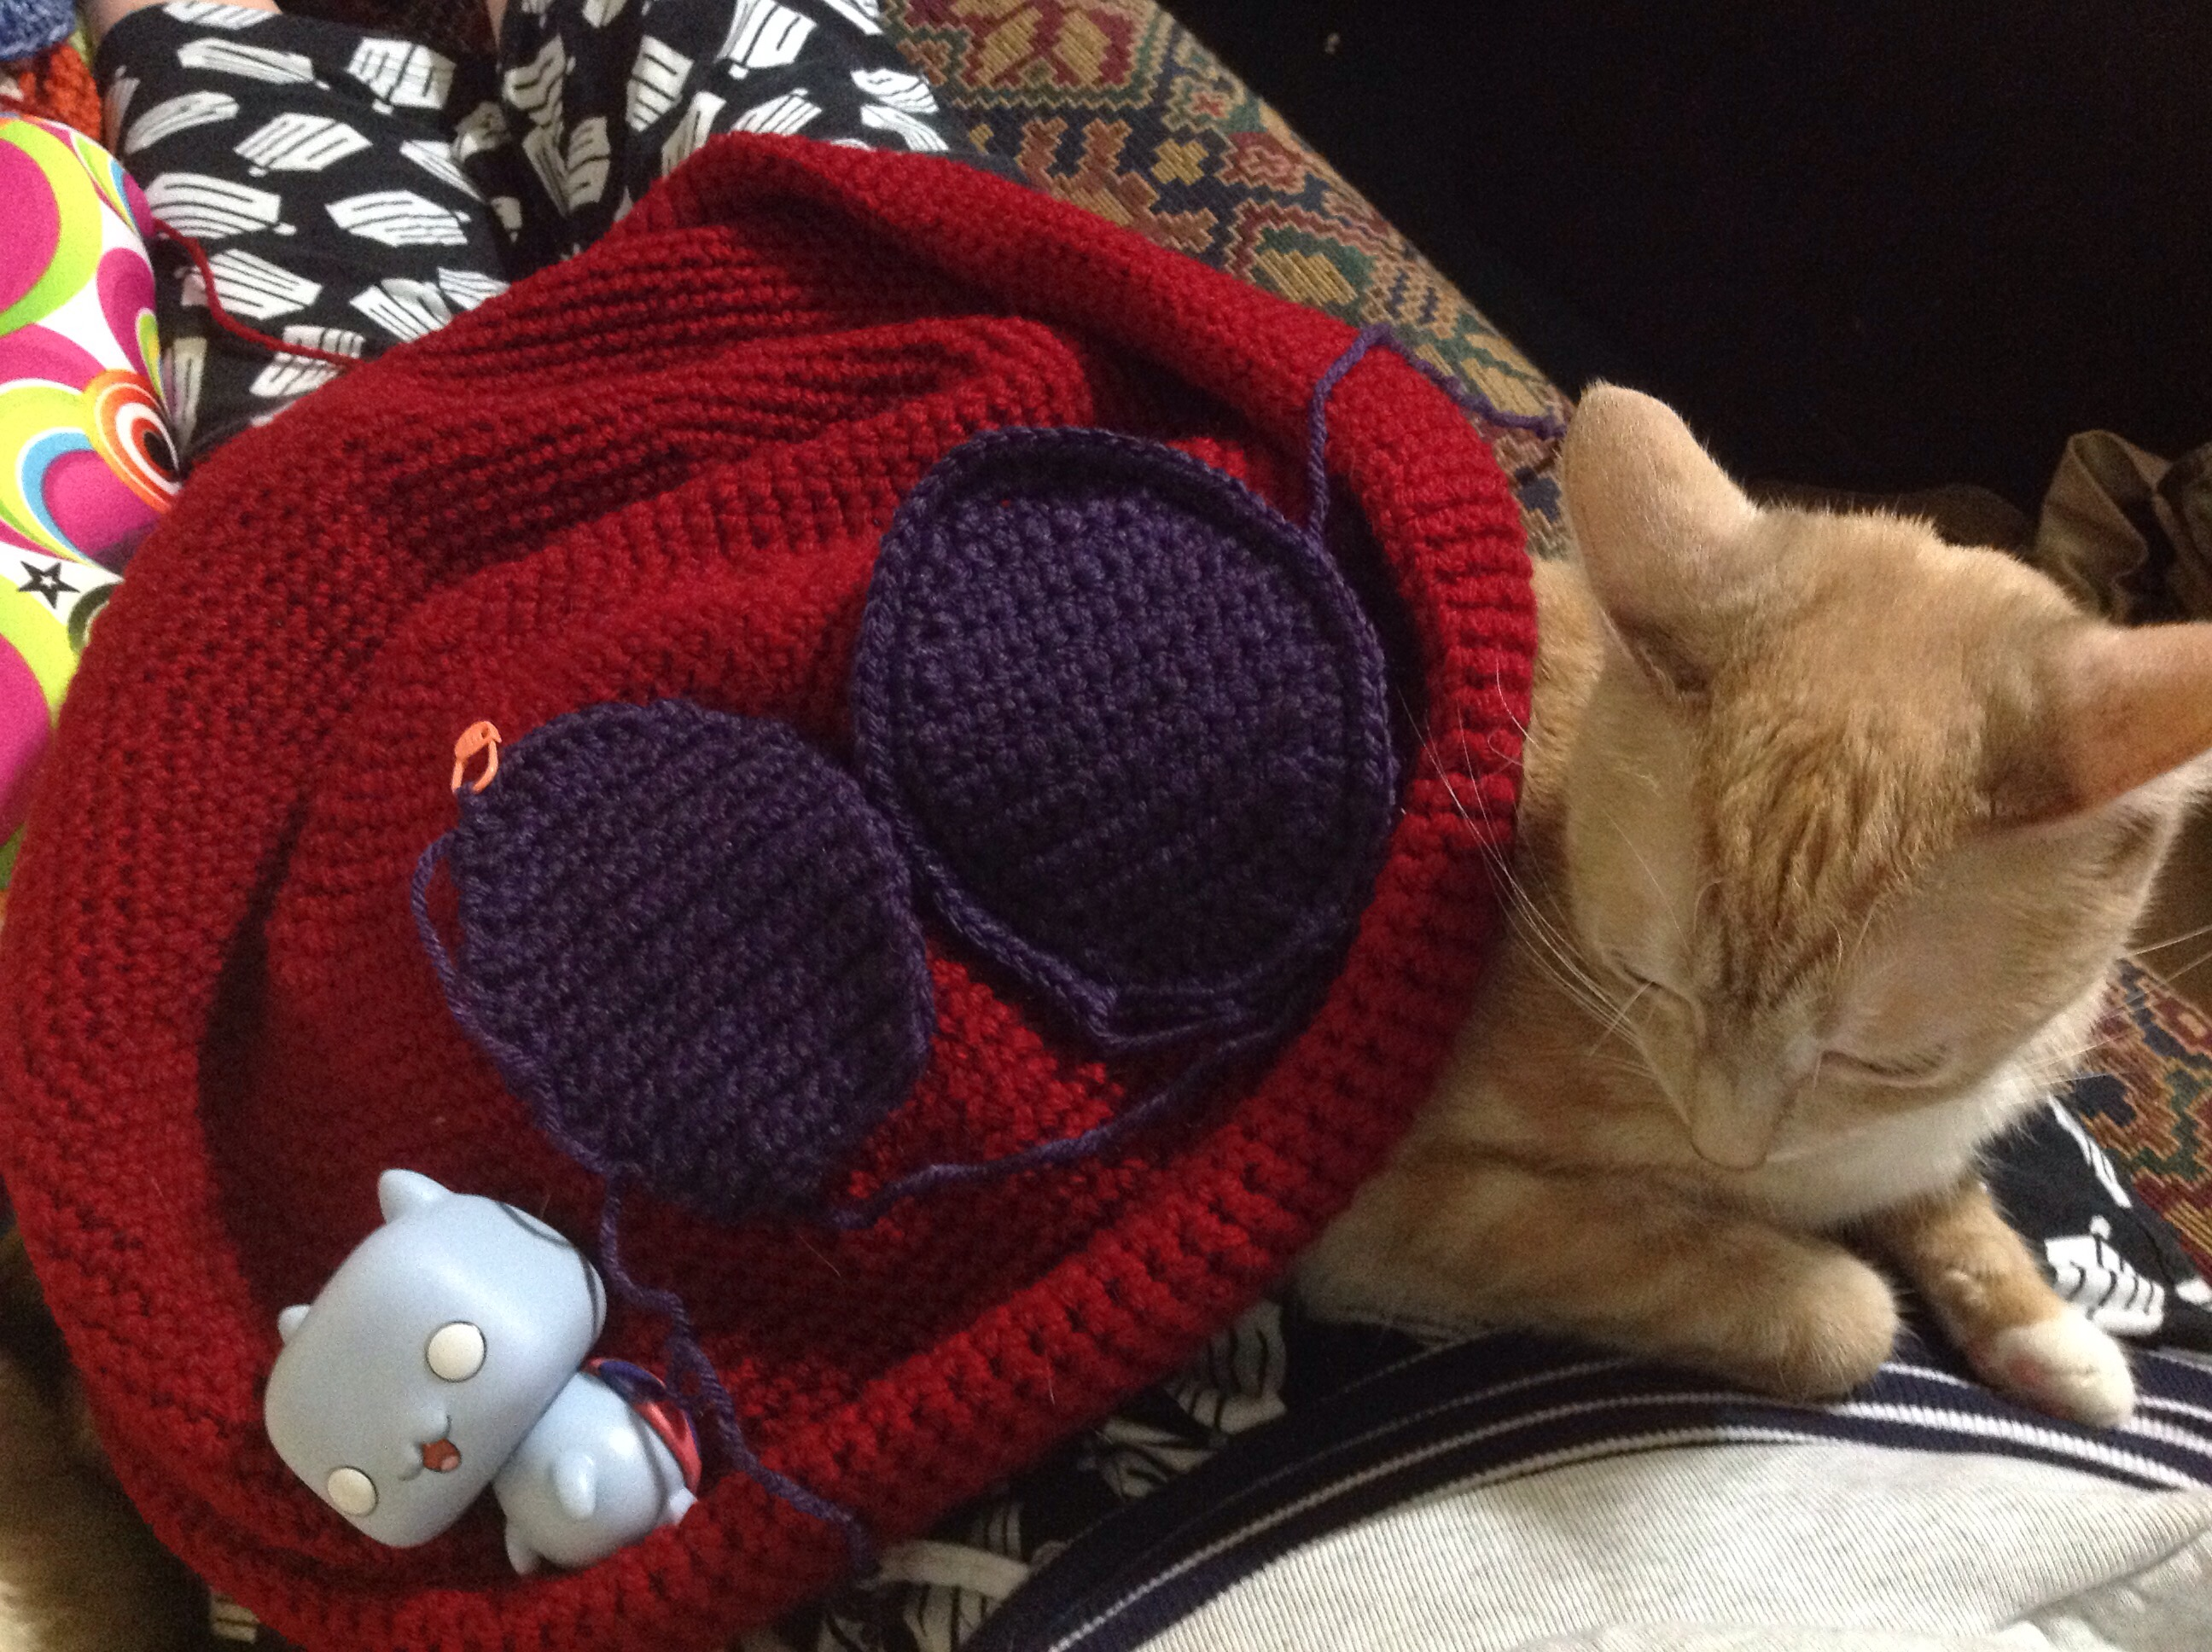 Catbug in progress!